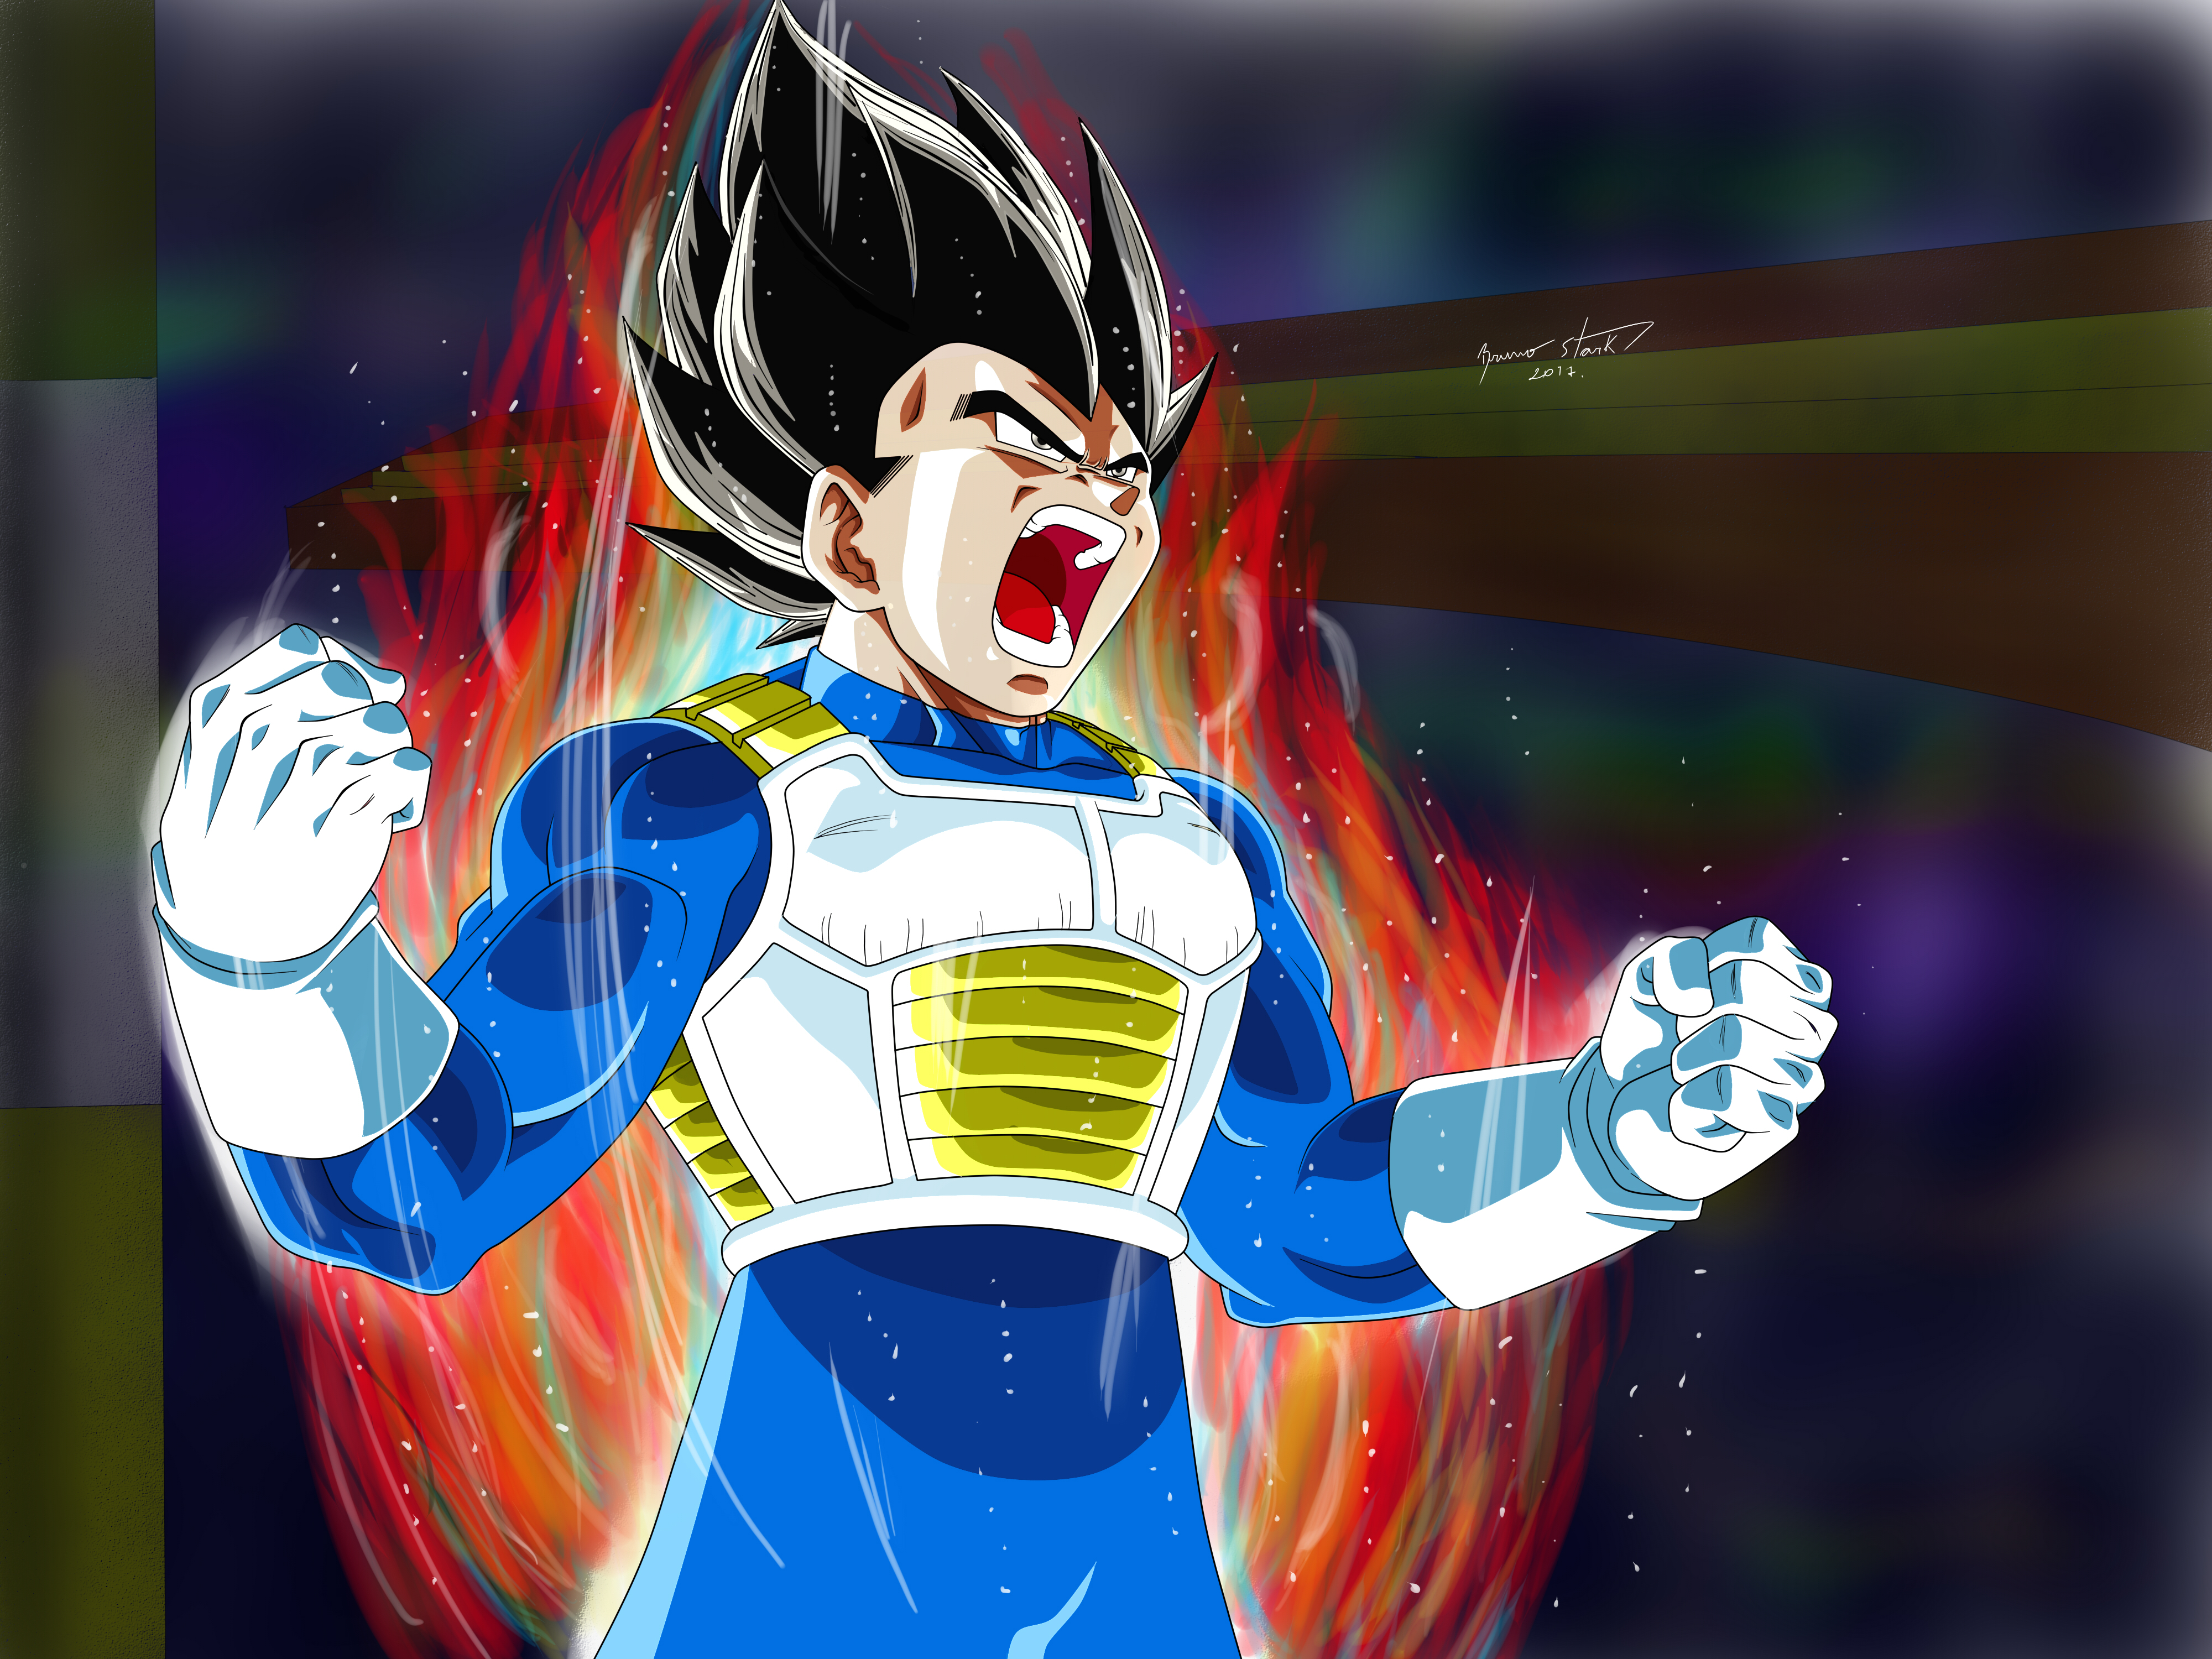 Vegeta Dragon Ball Super 4k Hd Anime 4k Wallpapers Images Backgrounds Photos And Pictures